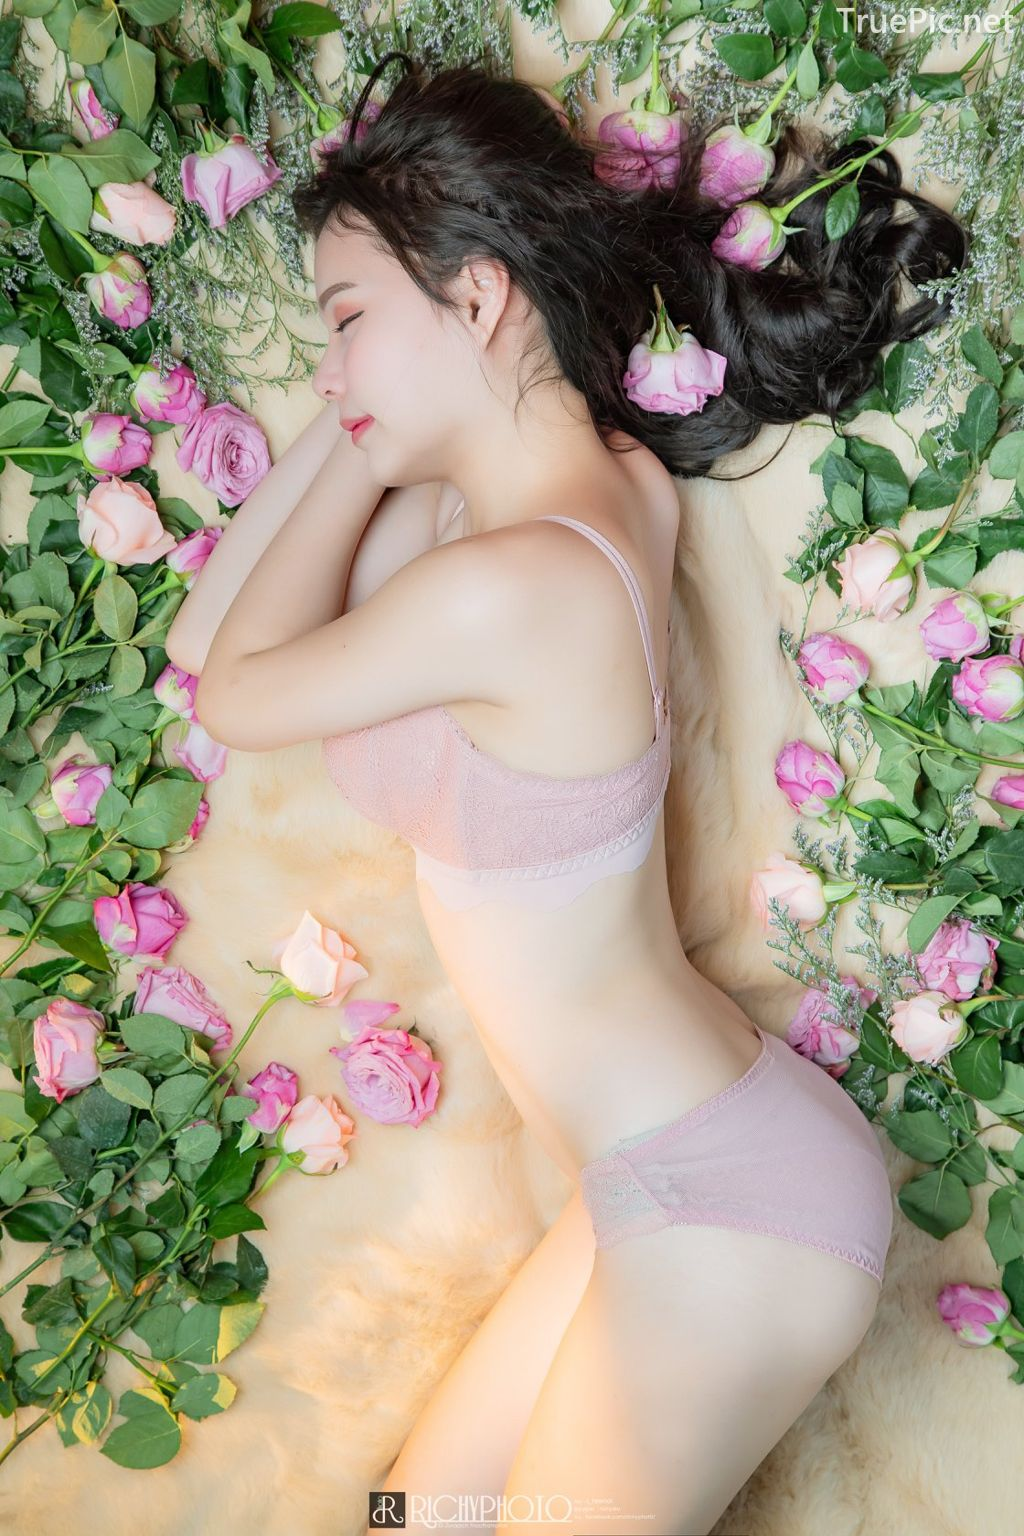 Image-Thailand-Cute-Model-Tuktick-Ponthip-Tantisuwanna-Girl-On-Flower-TruePic.net- Picture-7